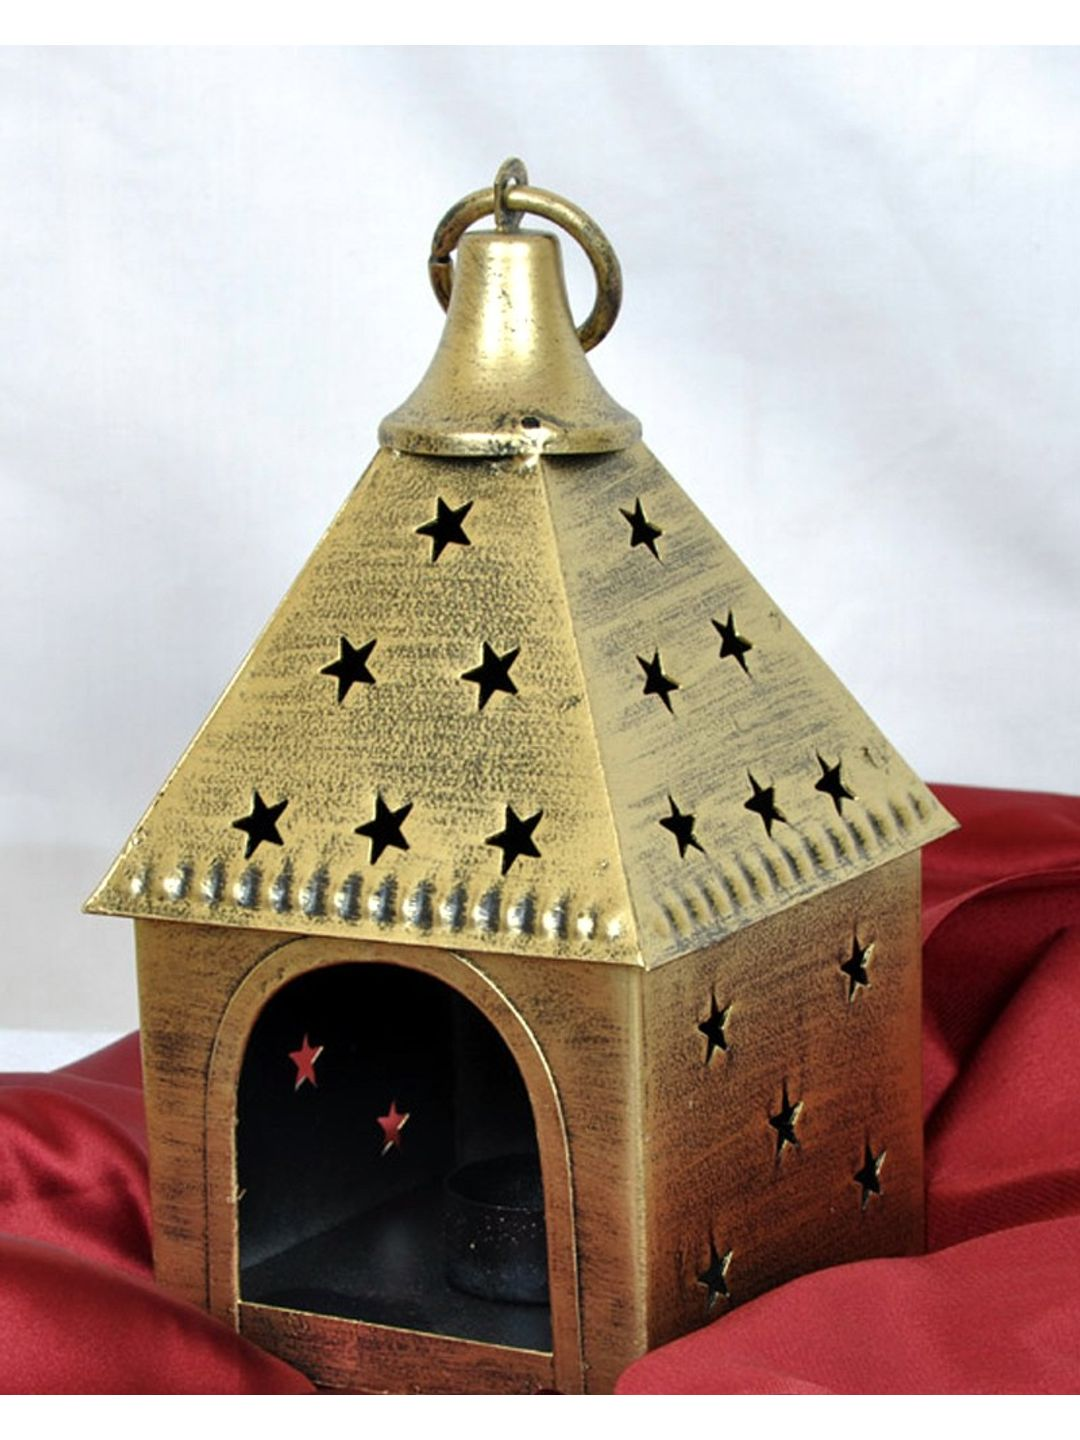 Antique Star Hut Tea Lite decorative